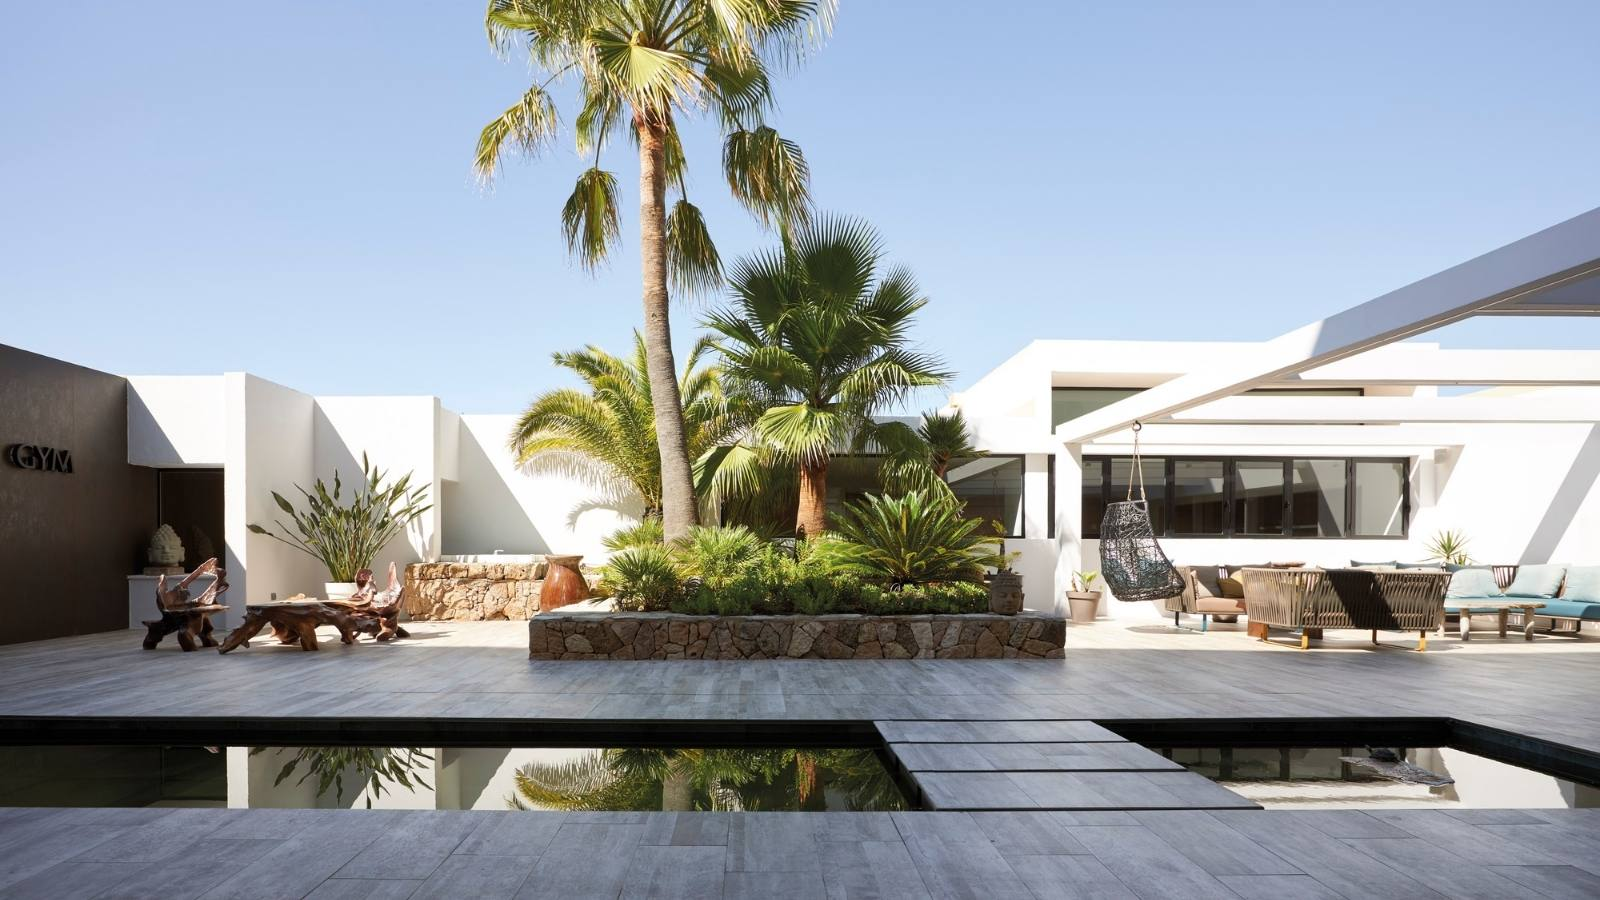 Ibiza Corso Hotel & Spa, luxury at its most chic in the Balearic Islands